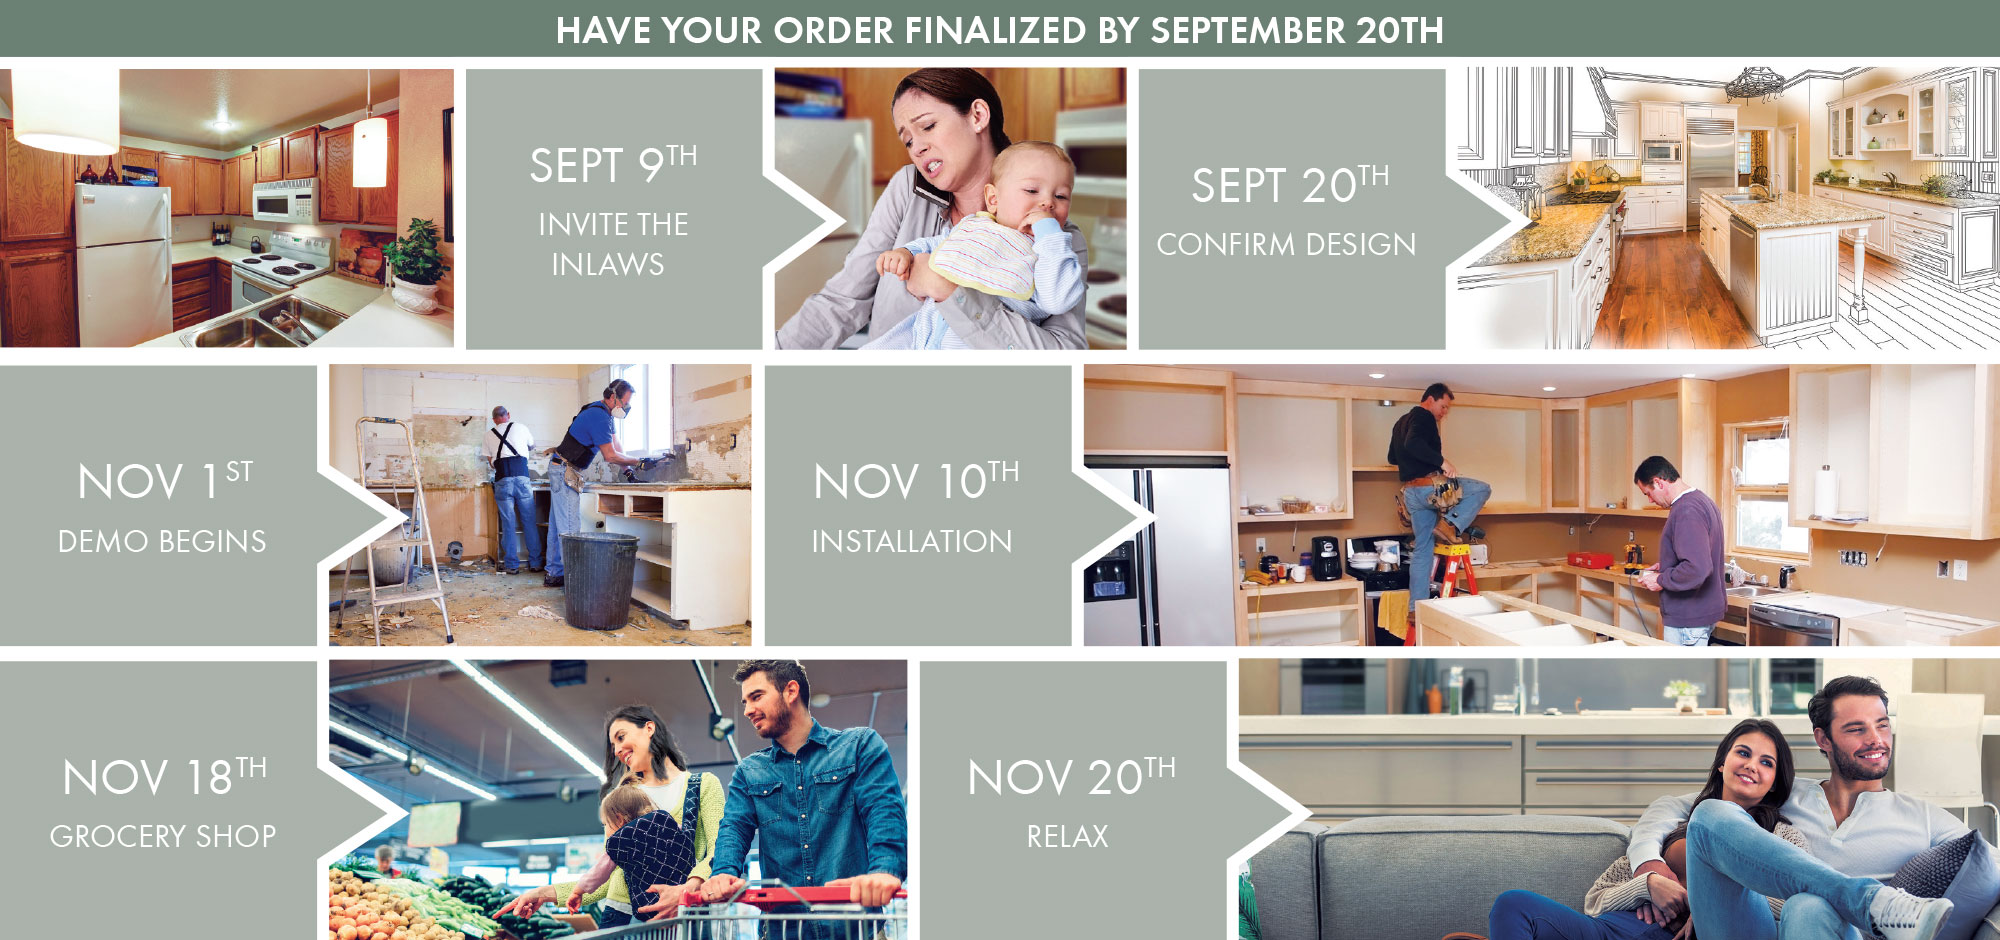 Follow our timeline here to make sure that you have your new kitchen in before Thanksgiving Day.